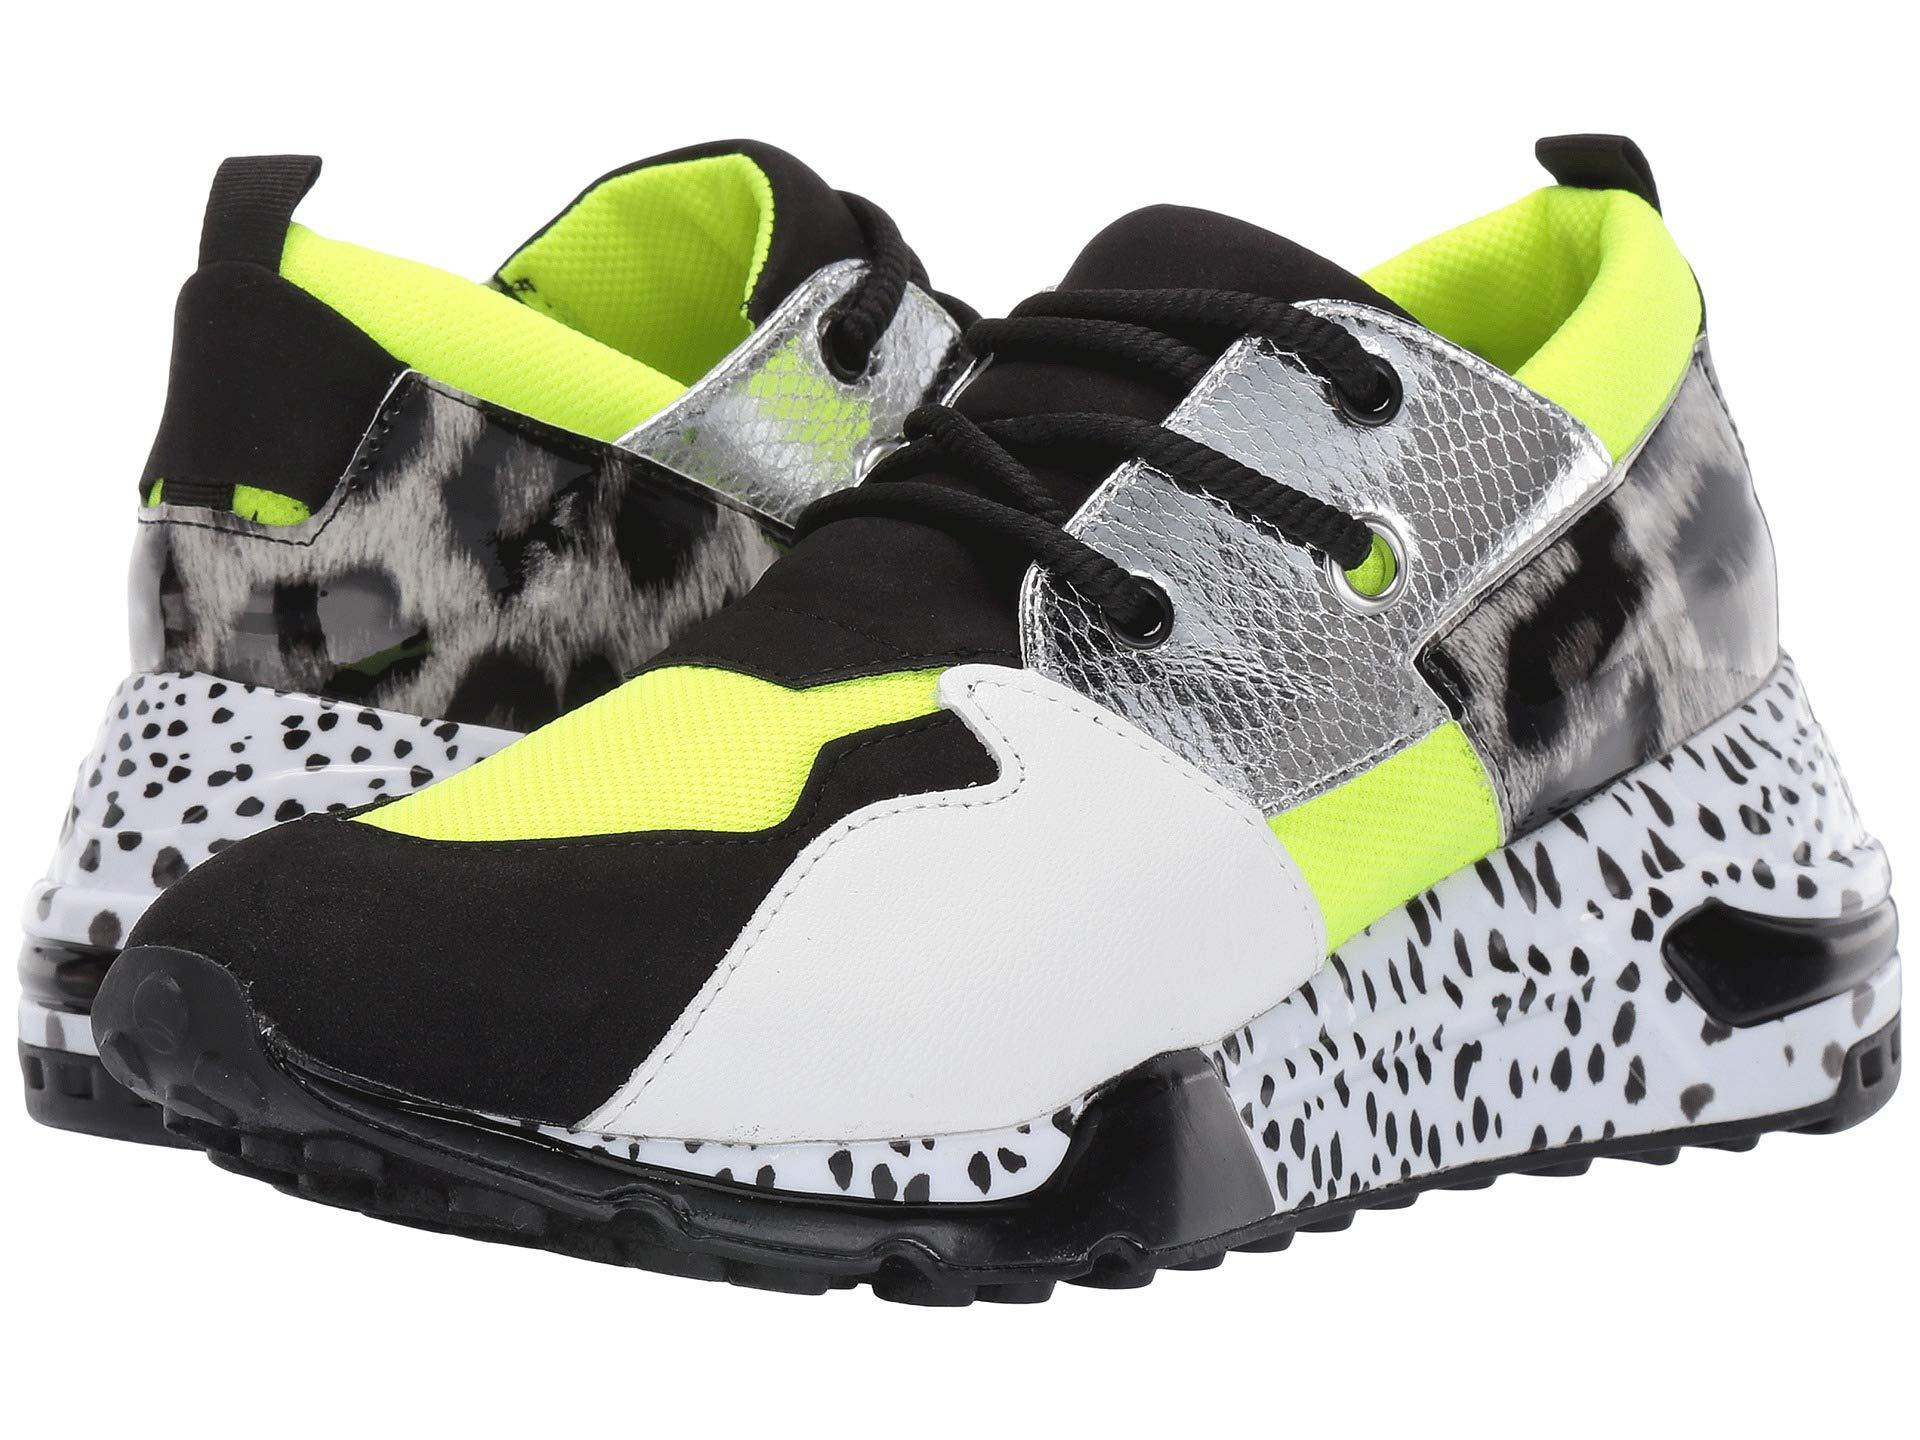 Steve Madden Cliff Sneakers in Lime